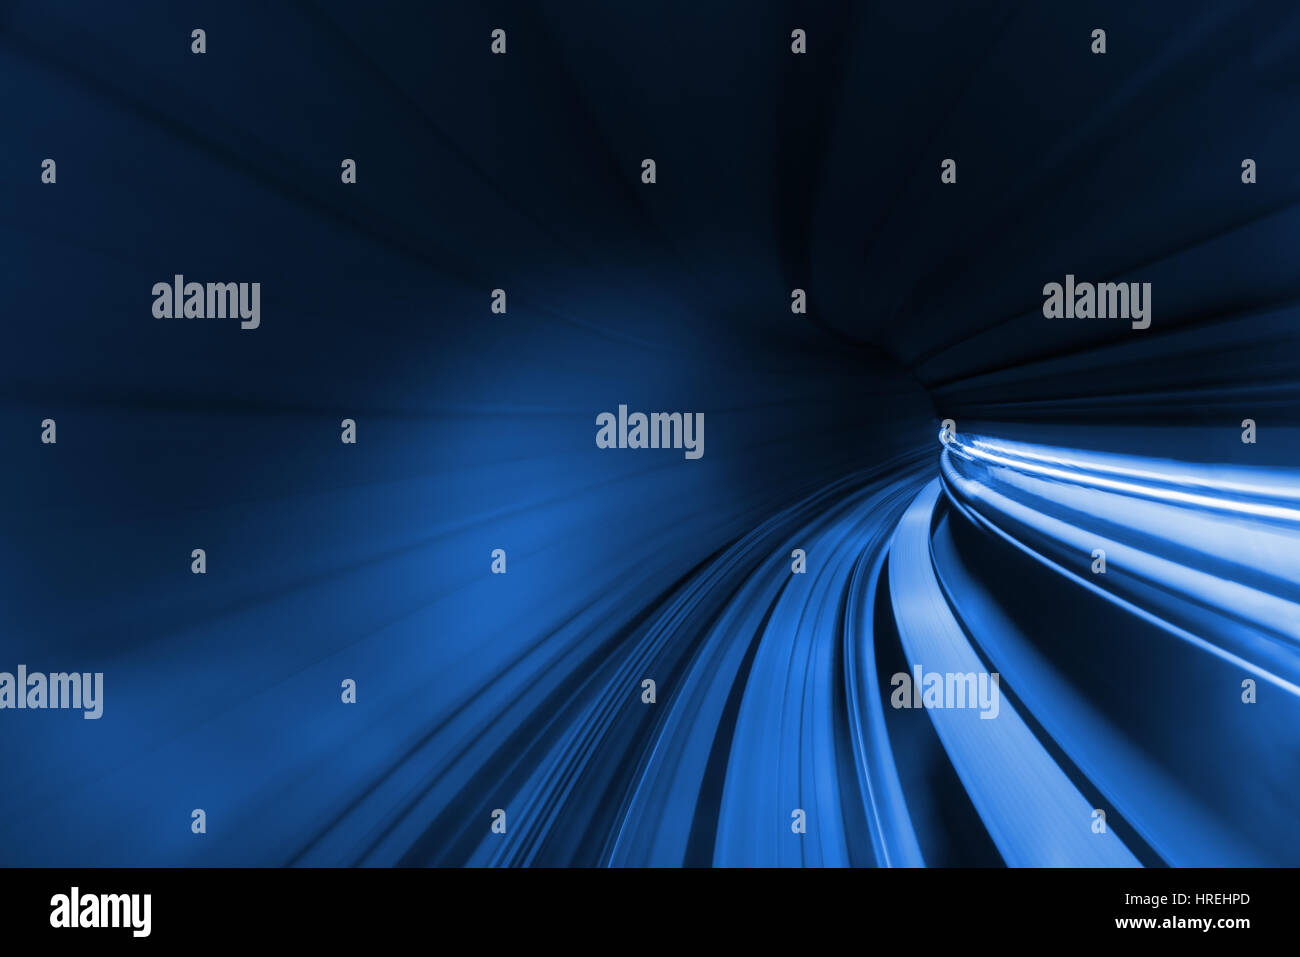 Speed blurred motion of train or subway train moving inside tunnel. - Stock Image